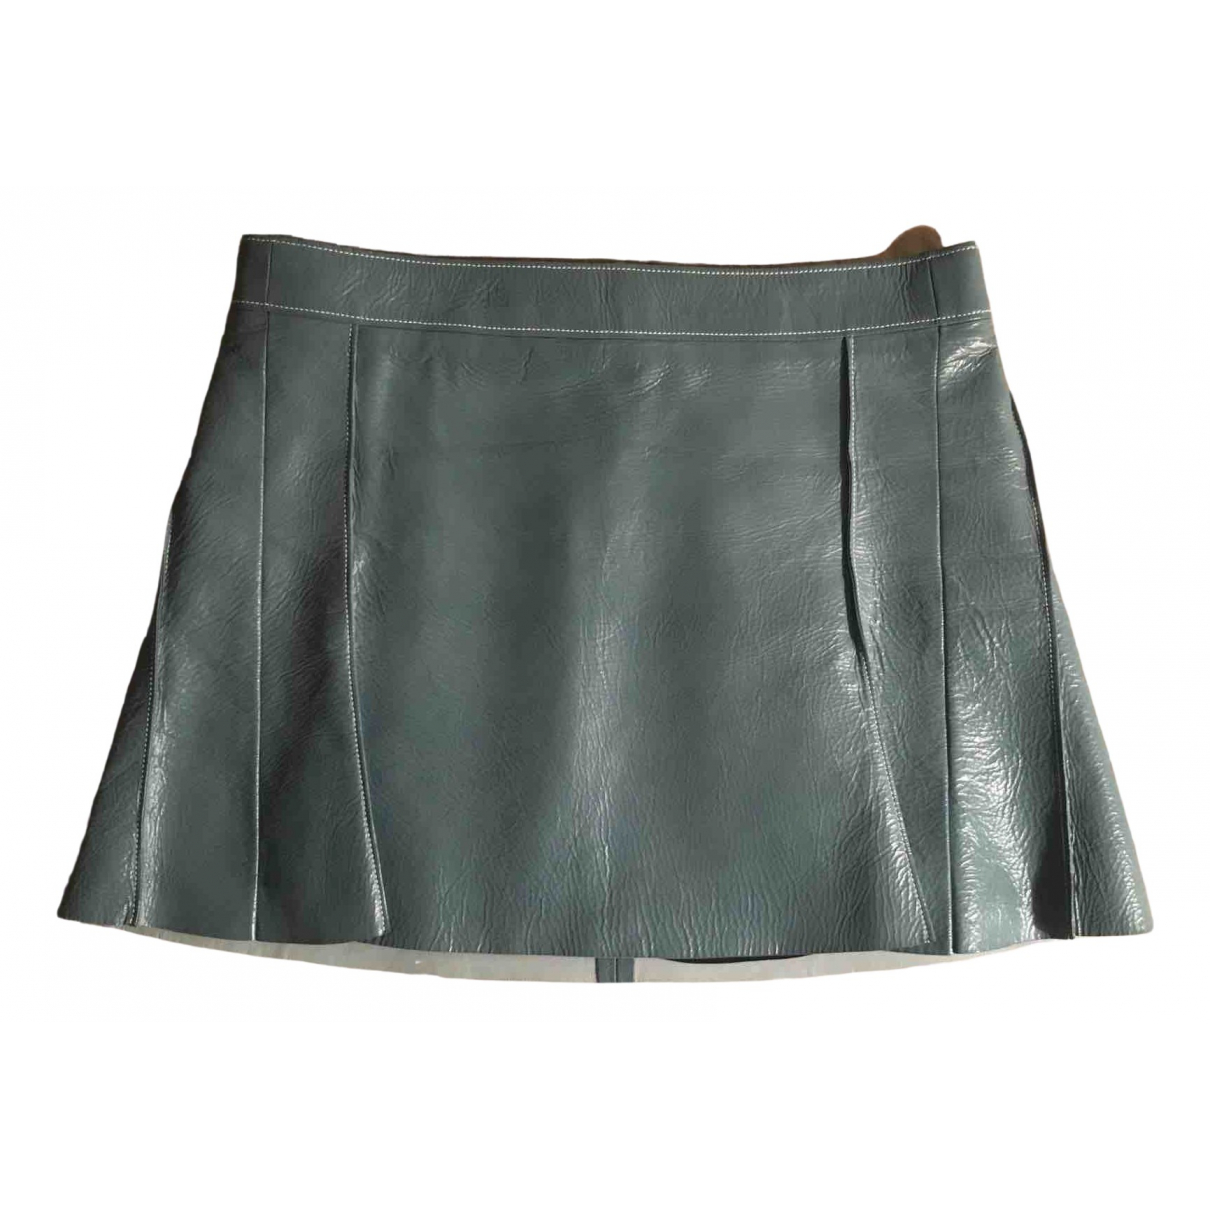 Chloé \N Blue Leather skirt for Women 38 FR